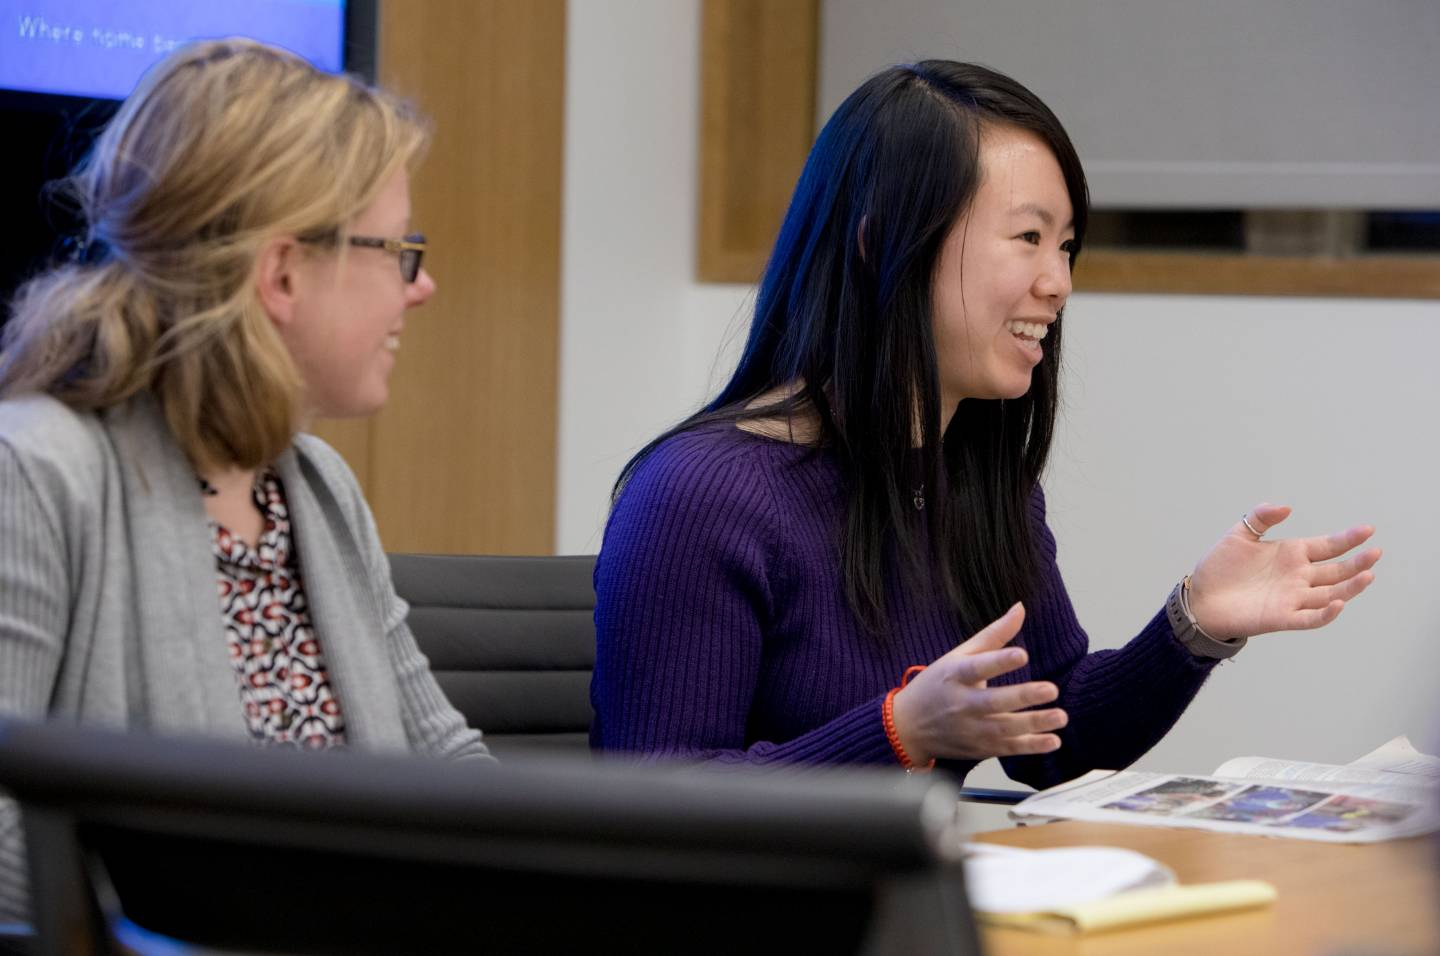 Professor Anna Stilz and student Angela Wu in classroom